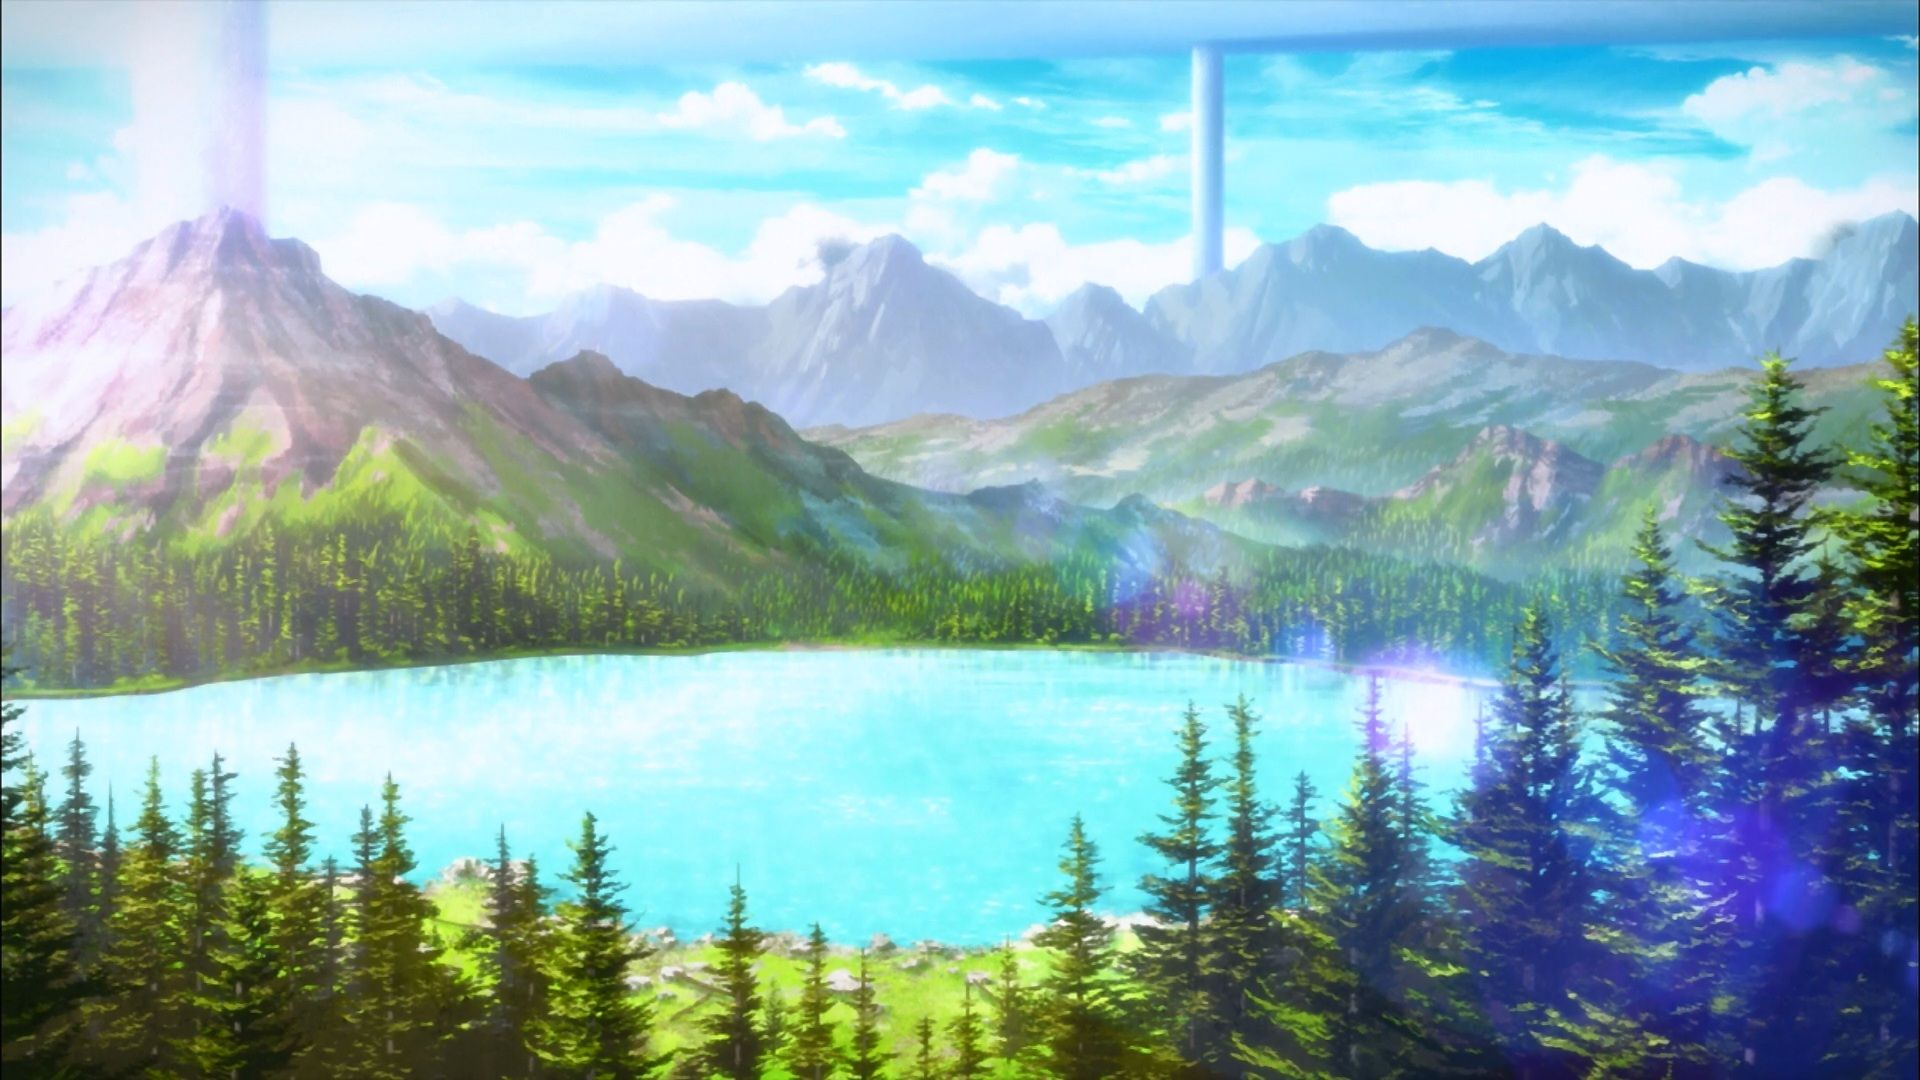 Hd Landscape Anime Wallpapers Top Free Hd Landscape Anime Backgrounds Wallpaperaccess